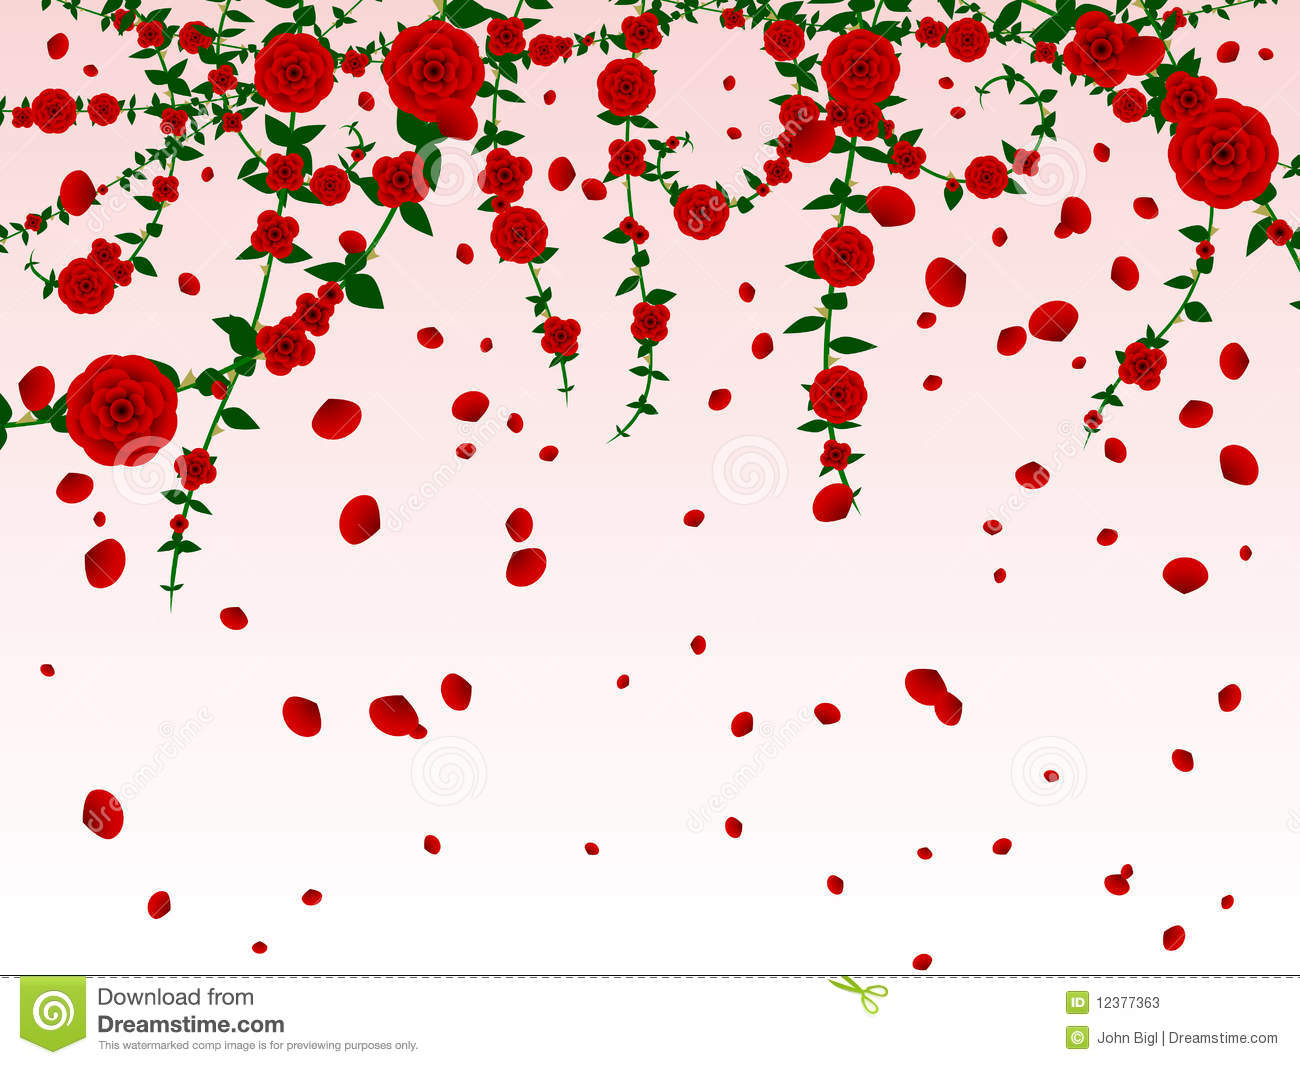 Rose Petals Falling Wallpaper Transparent Gif Hanging Roses Background Stock Illustration Illustration